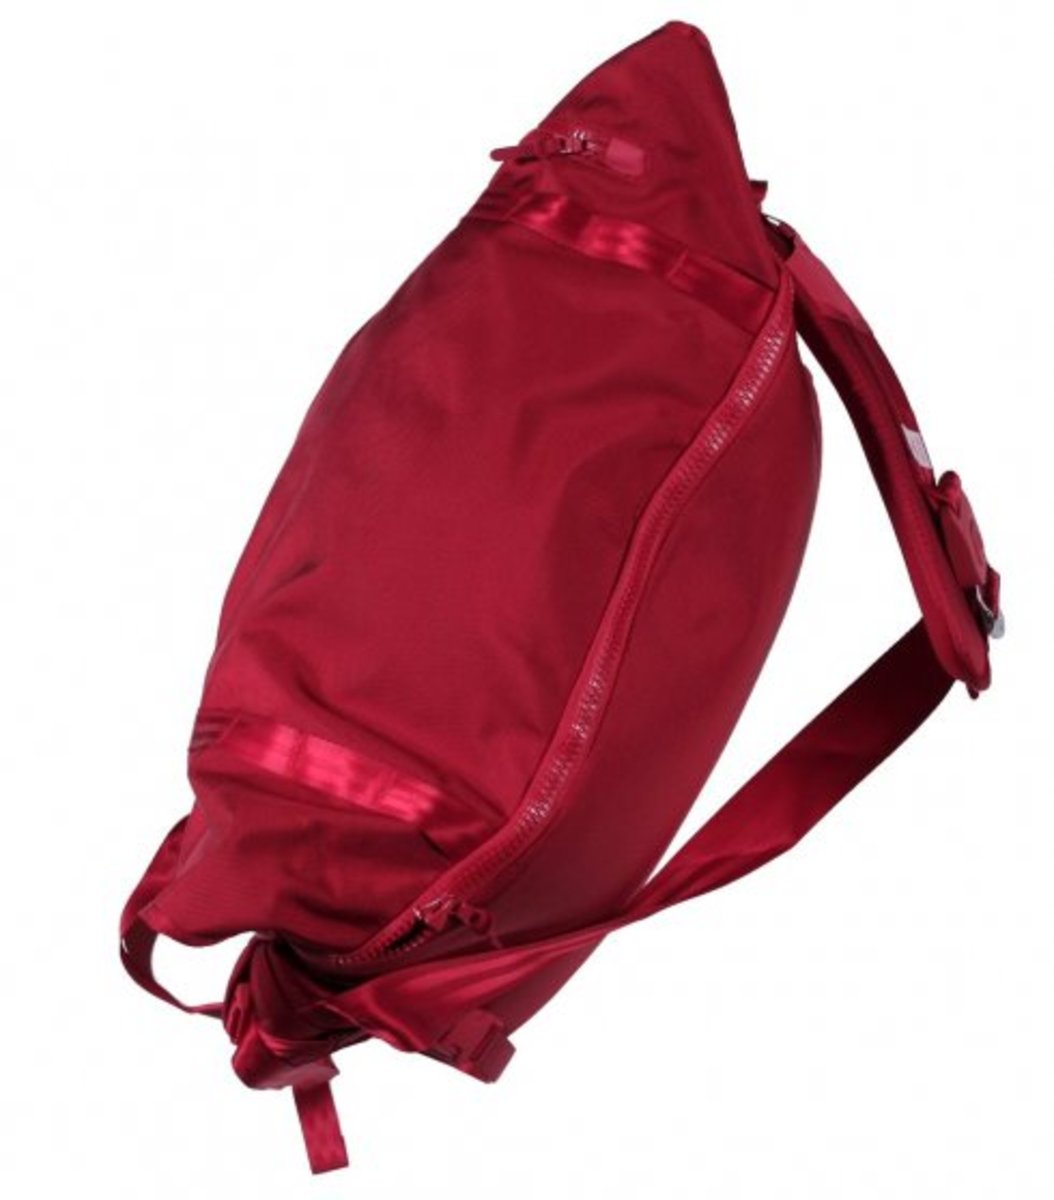 visvim - Red Luggage Collection - 2